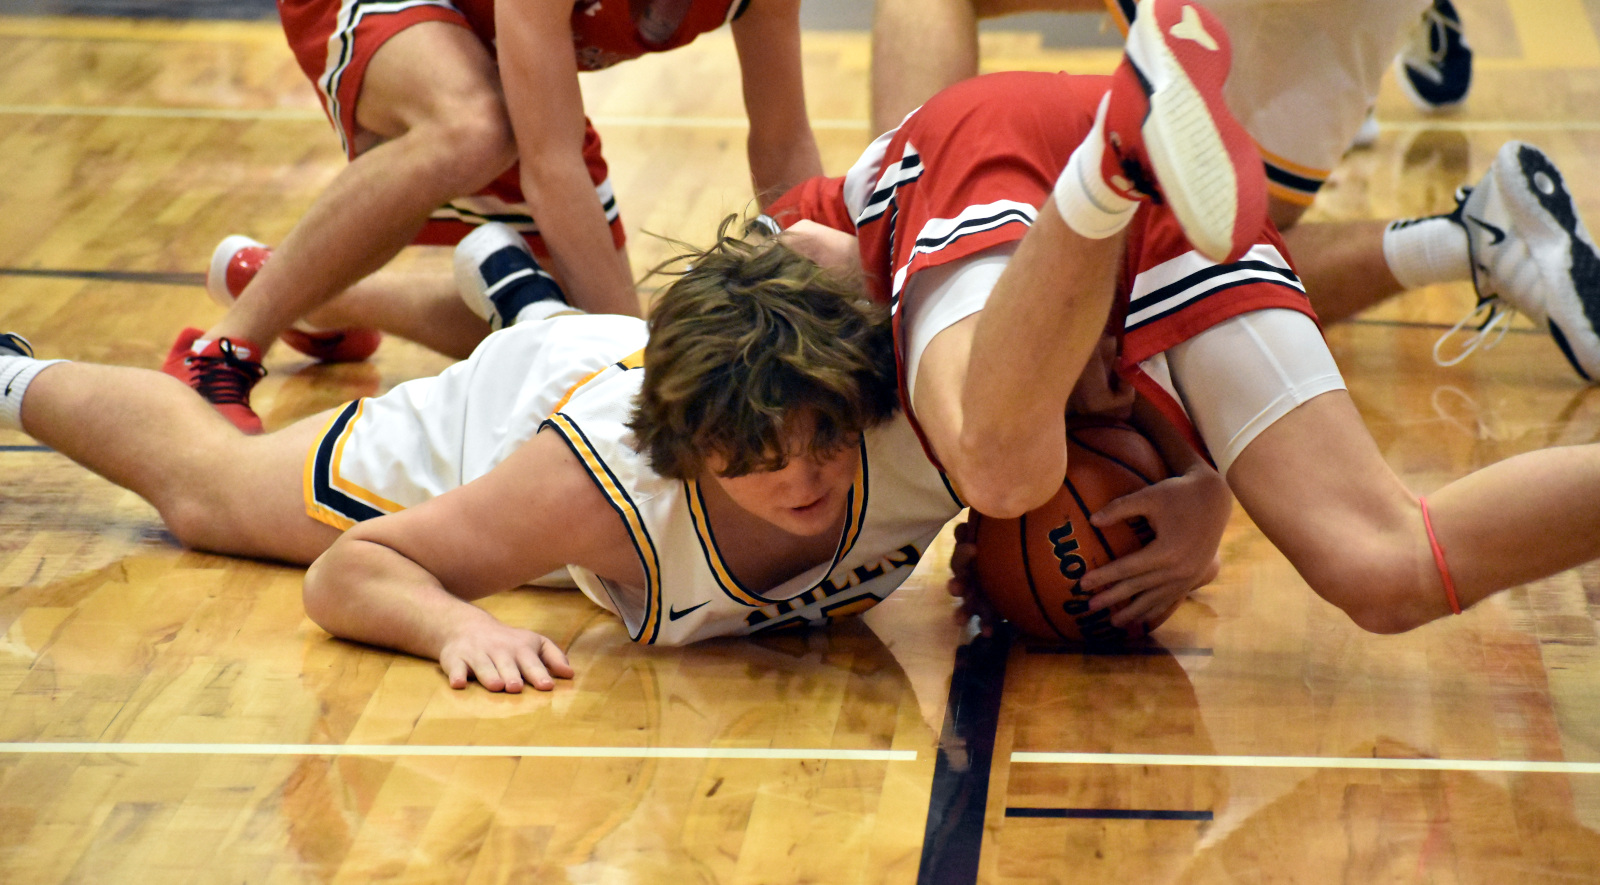 Basketball player dives on floor